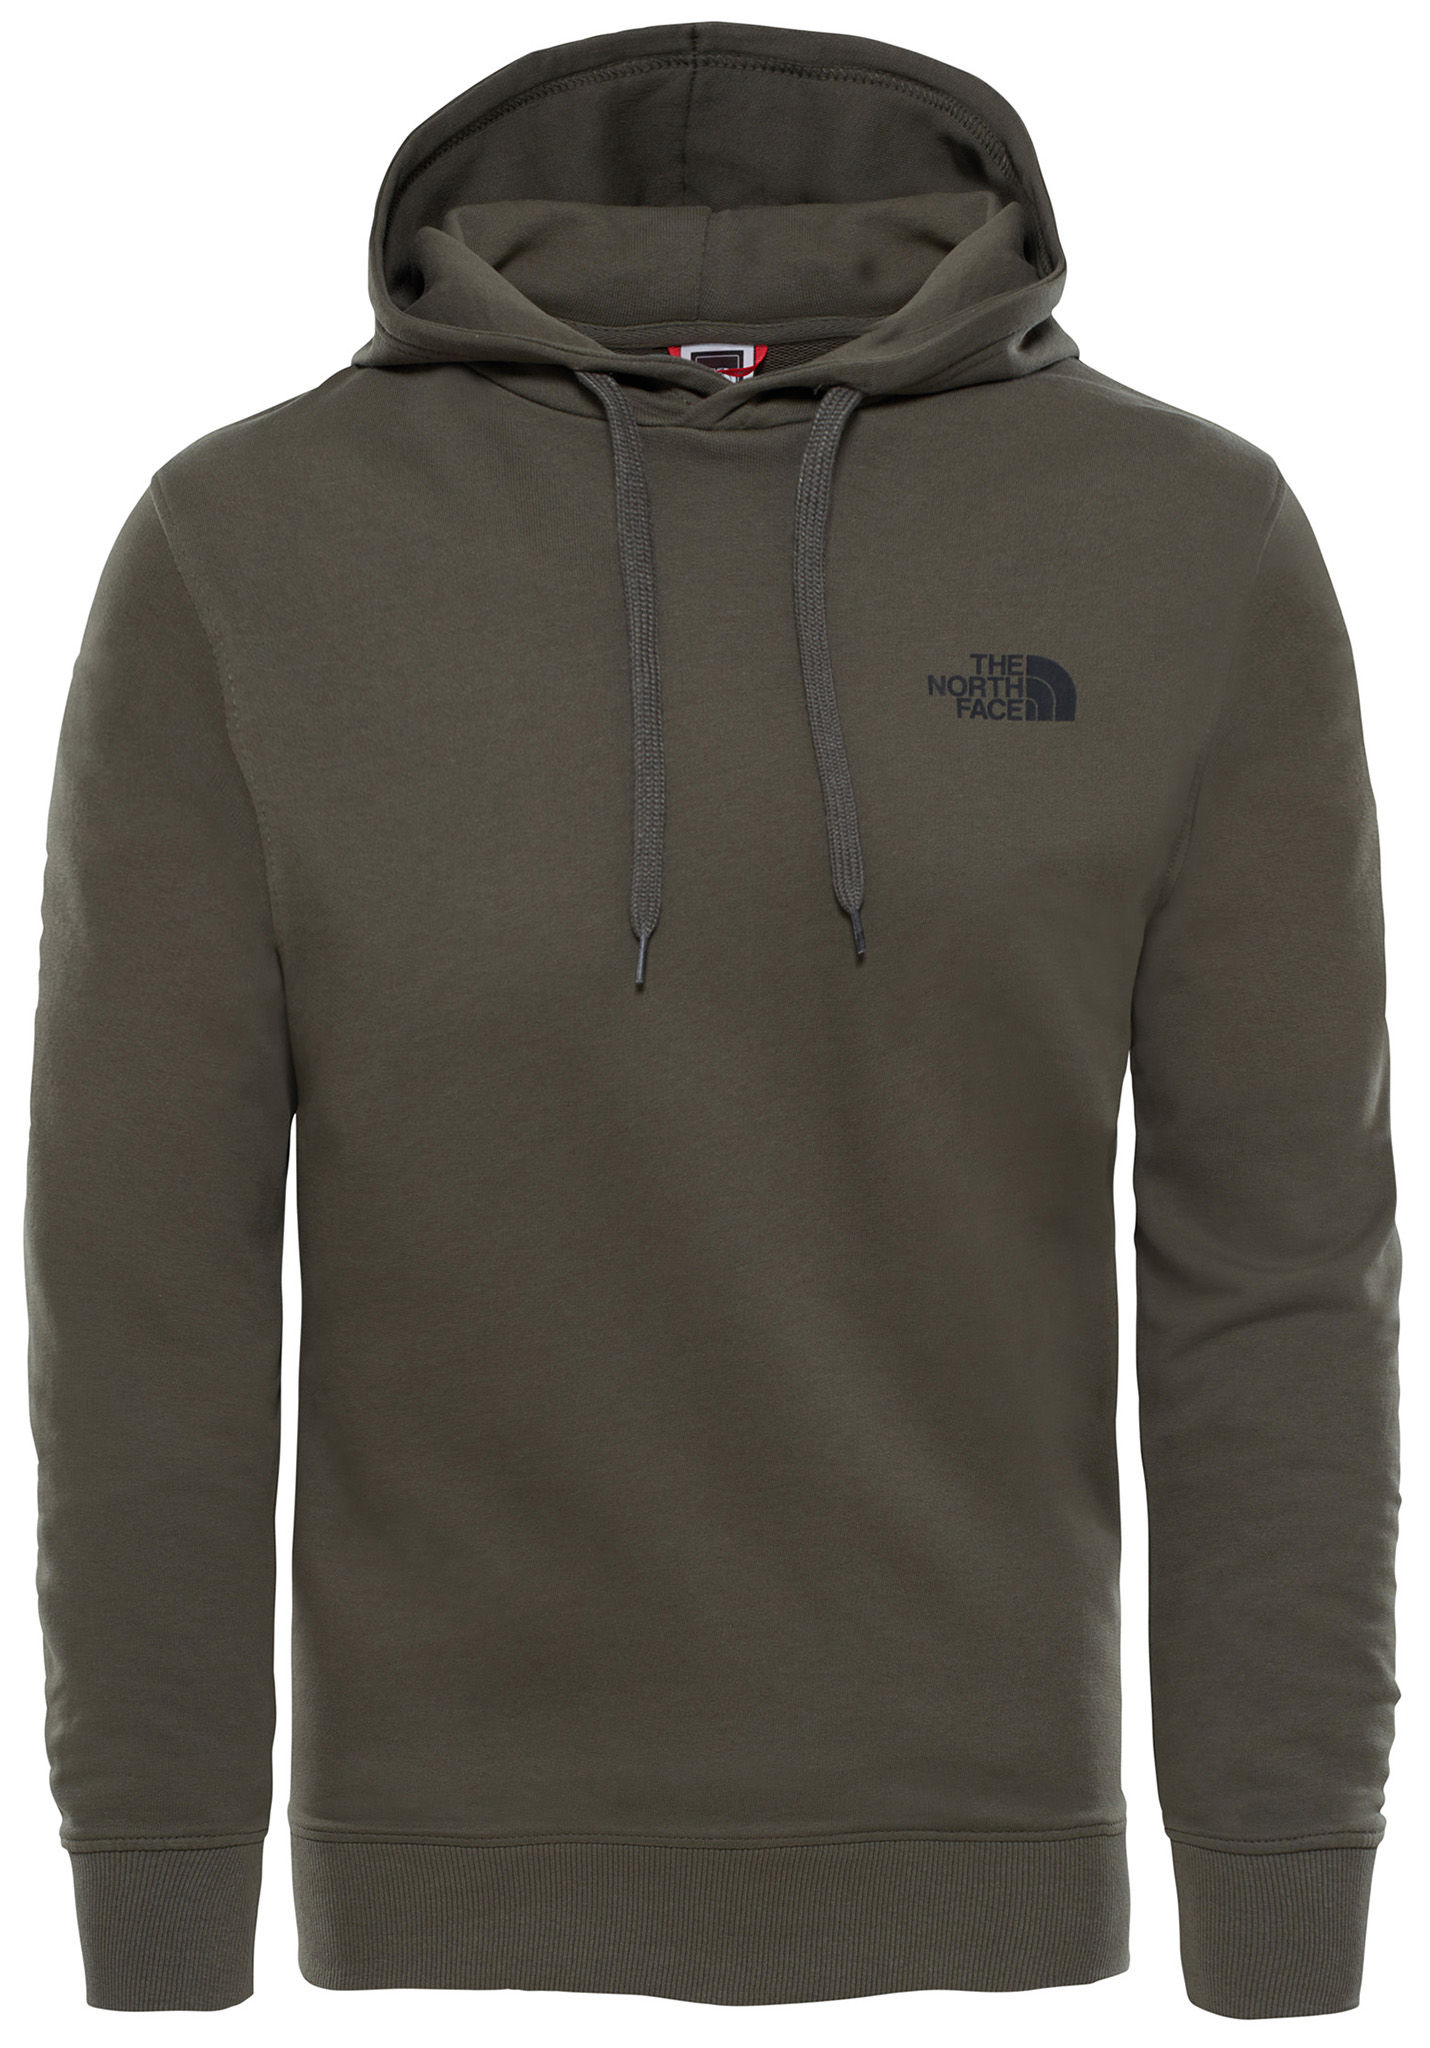 THE NORTH FACE Seasonal Drew Peak - Felpa con cappuccio per Uomo - Verde -  Planet Sports 2b81a30f5c37